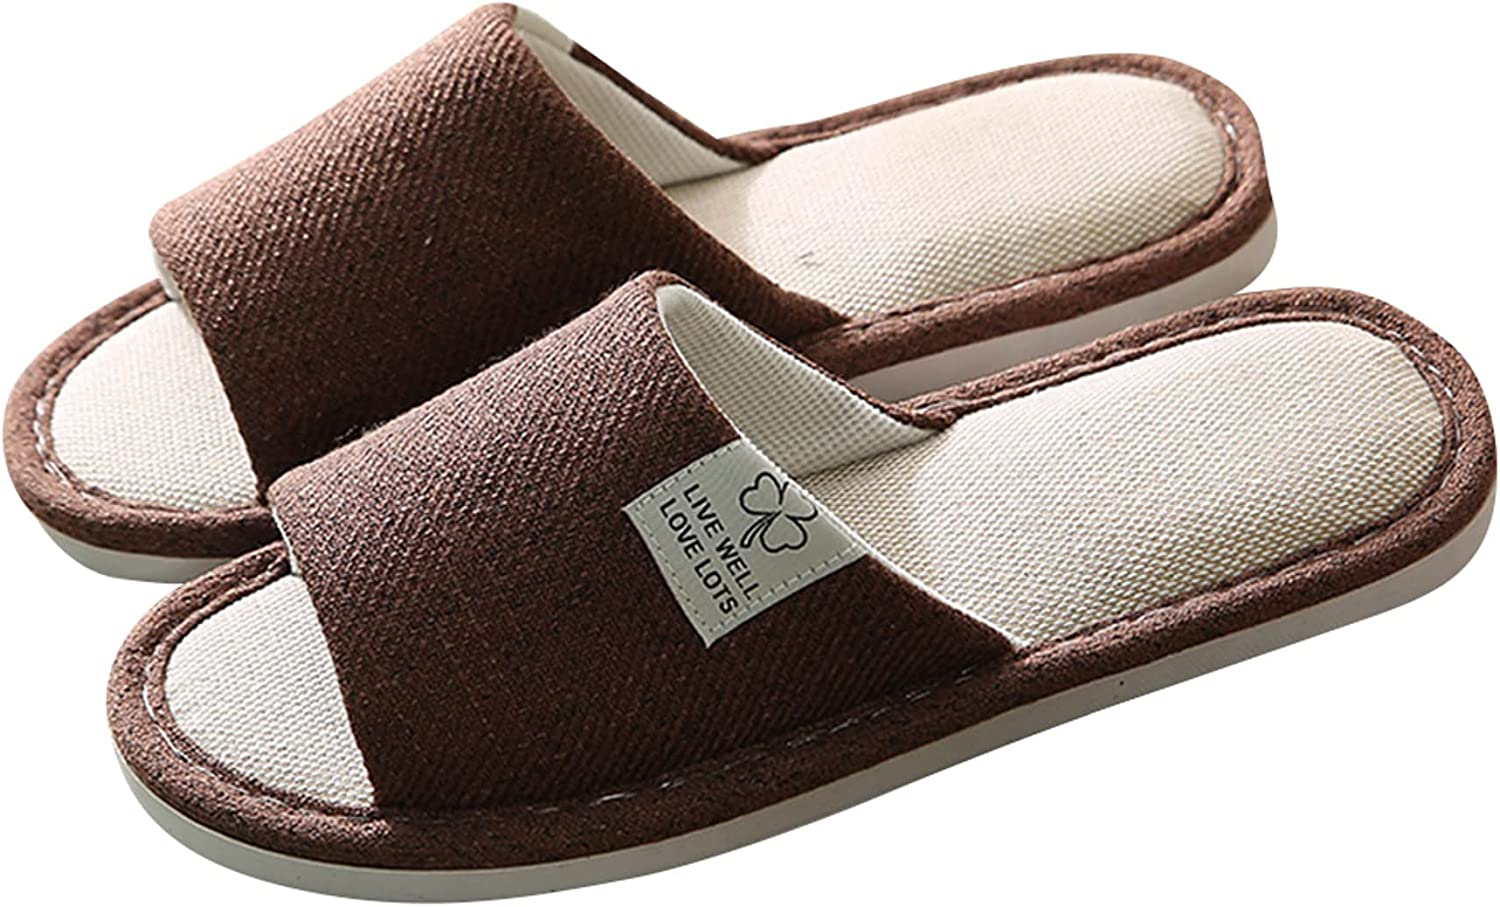 Stunner Womens and Max 49% OFF Mens Cotton Ranking TOP8 Slippers Memory Couple Foam Home